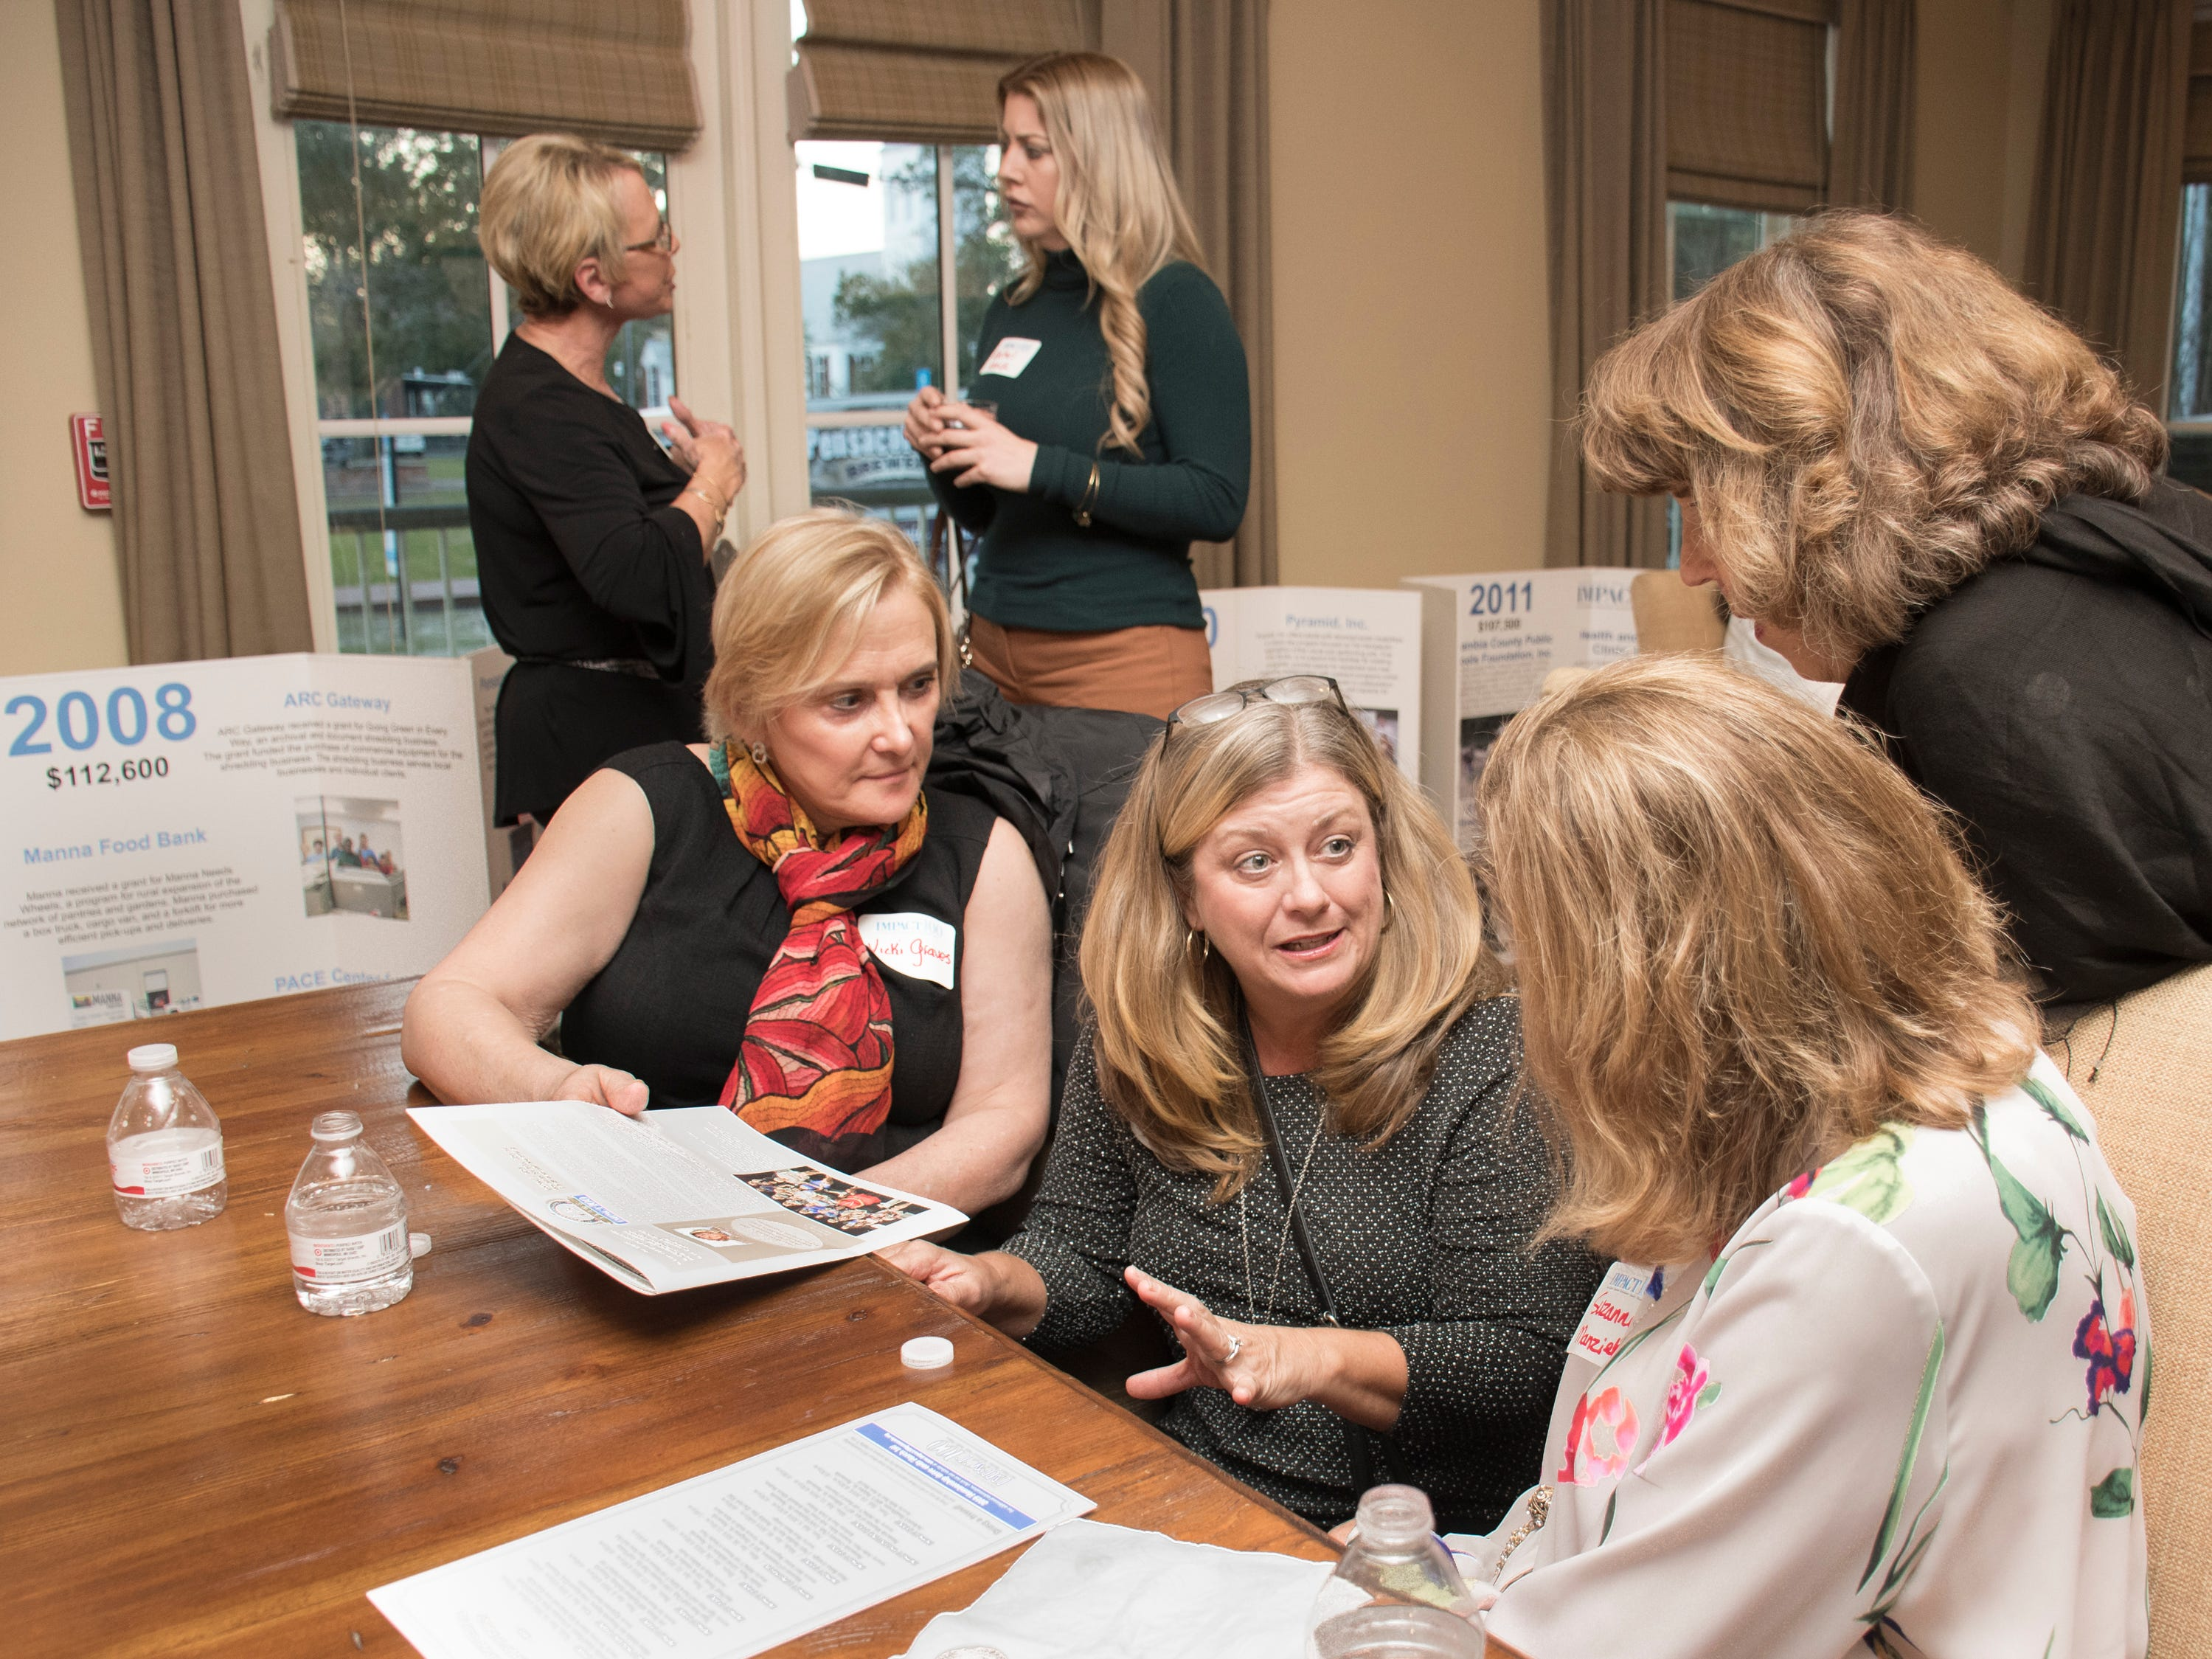 Vickie Graves, from left, Susan Bonsignore, Mary Bryan, and Suzanne Manziek chat during the Impact 100 Pensacola Bay Area meeting at the Lee House in Pensacola on Tuesday, January 8, 2019.